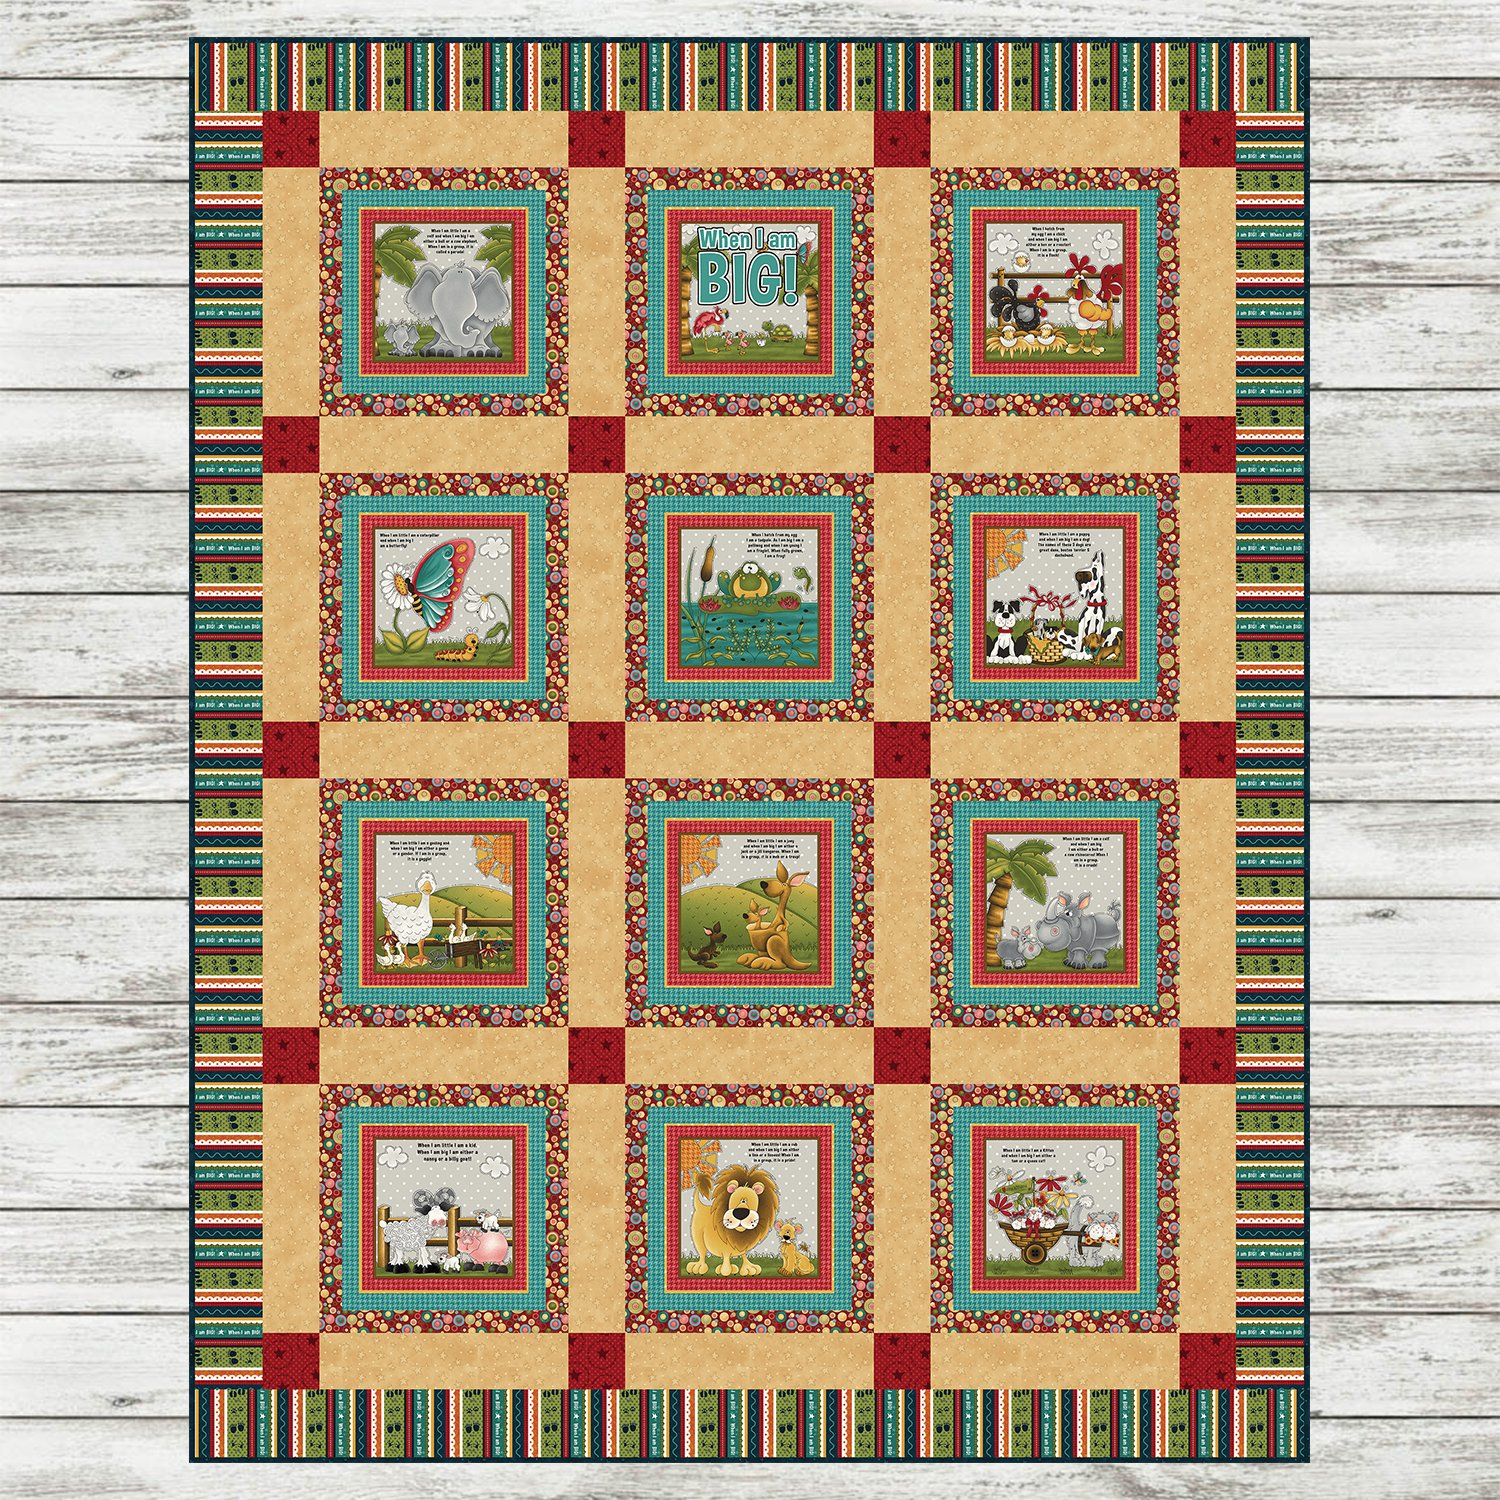 When I am BIG - Book Quilt Kit - Red Version